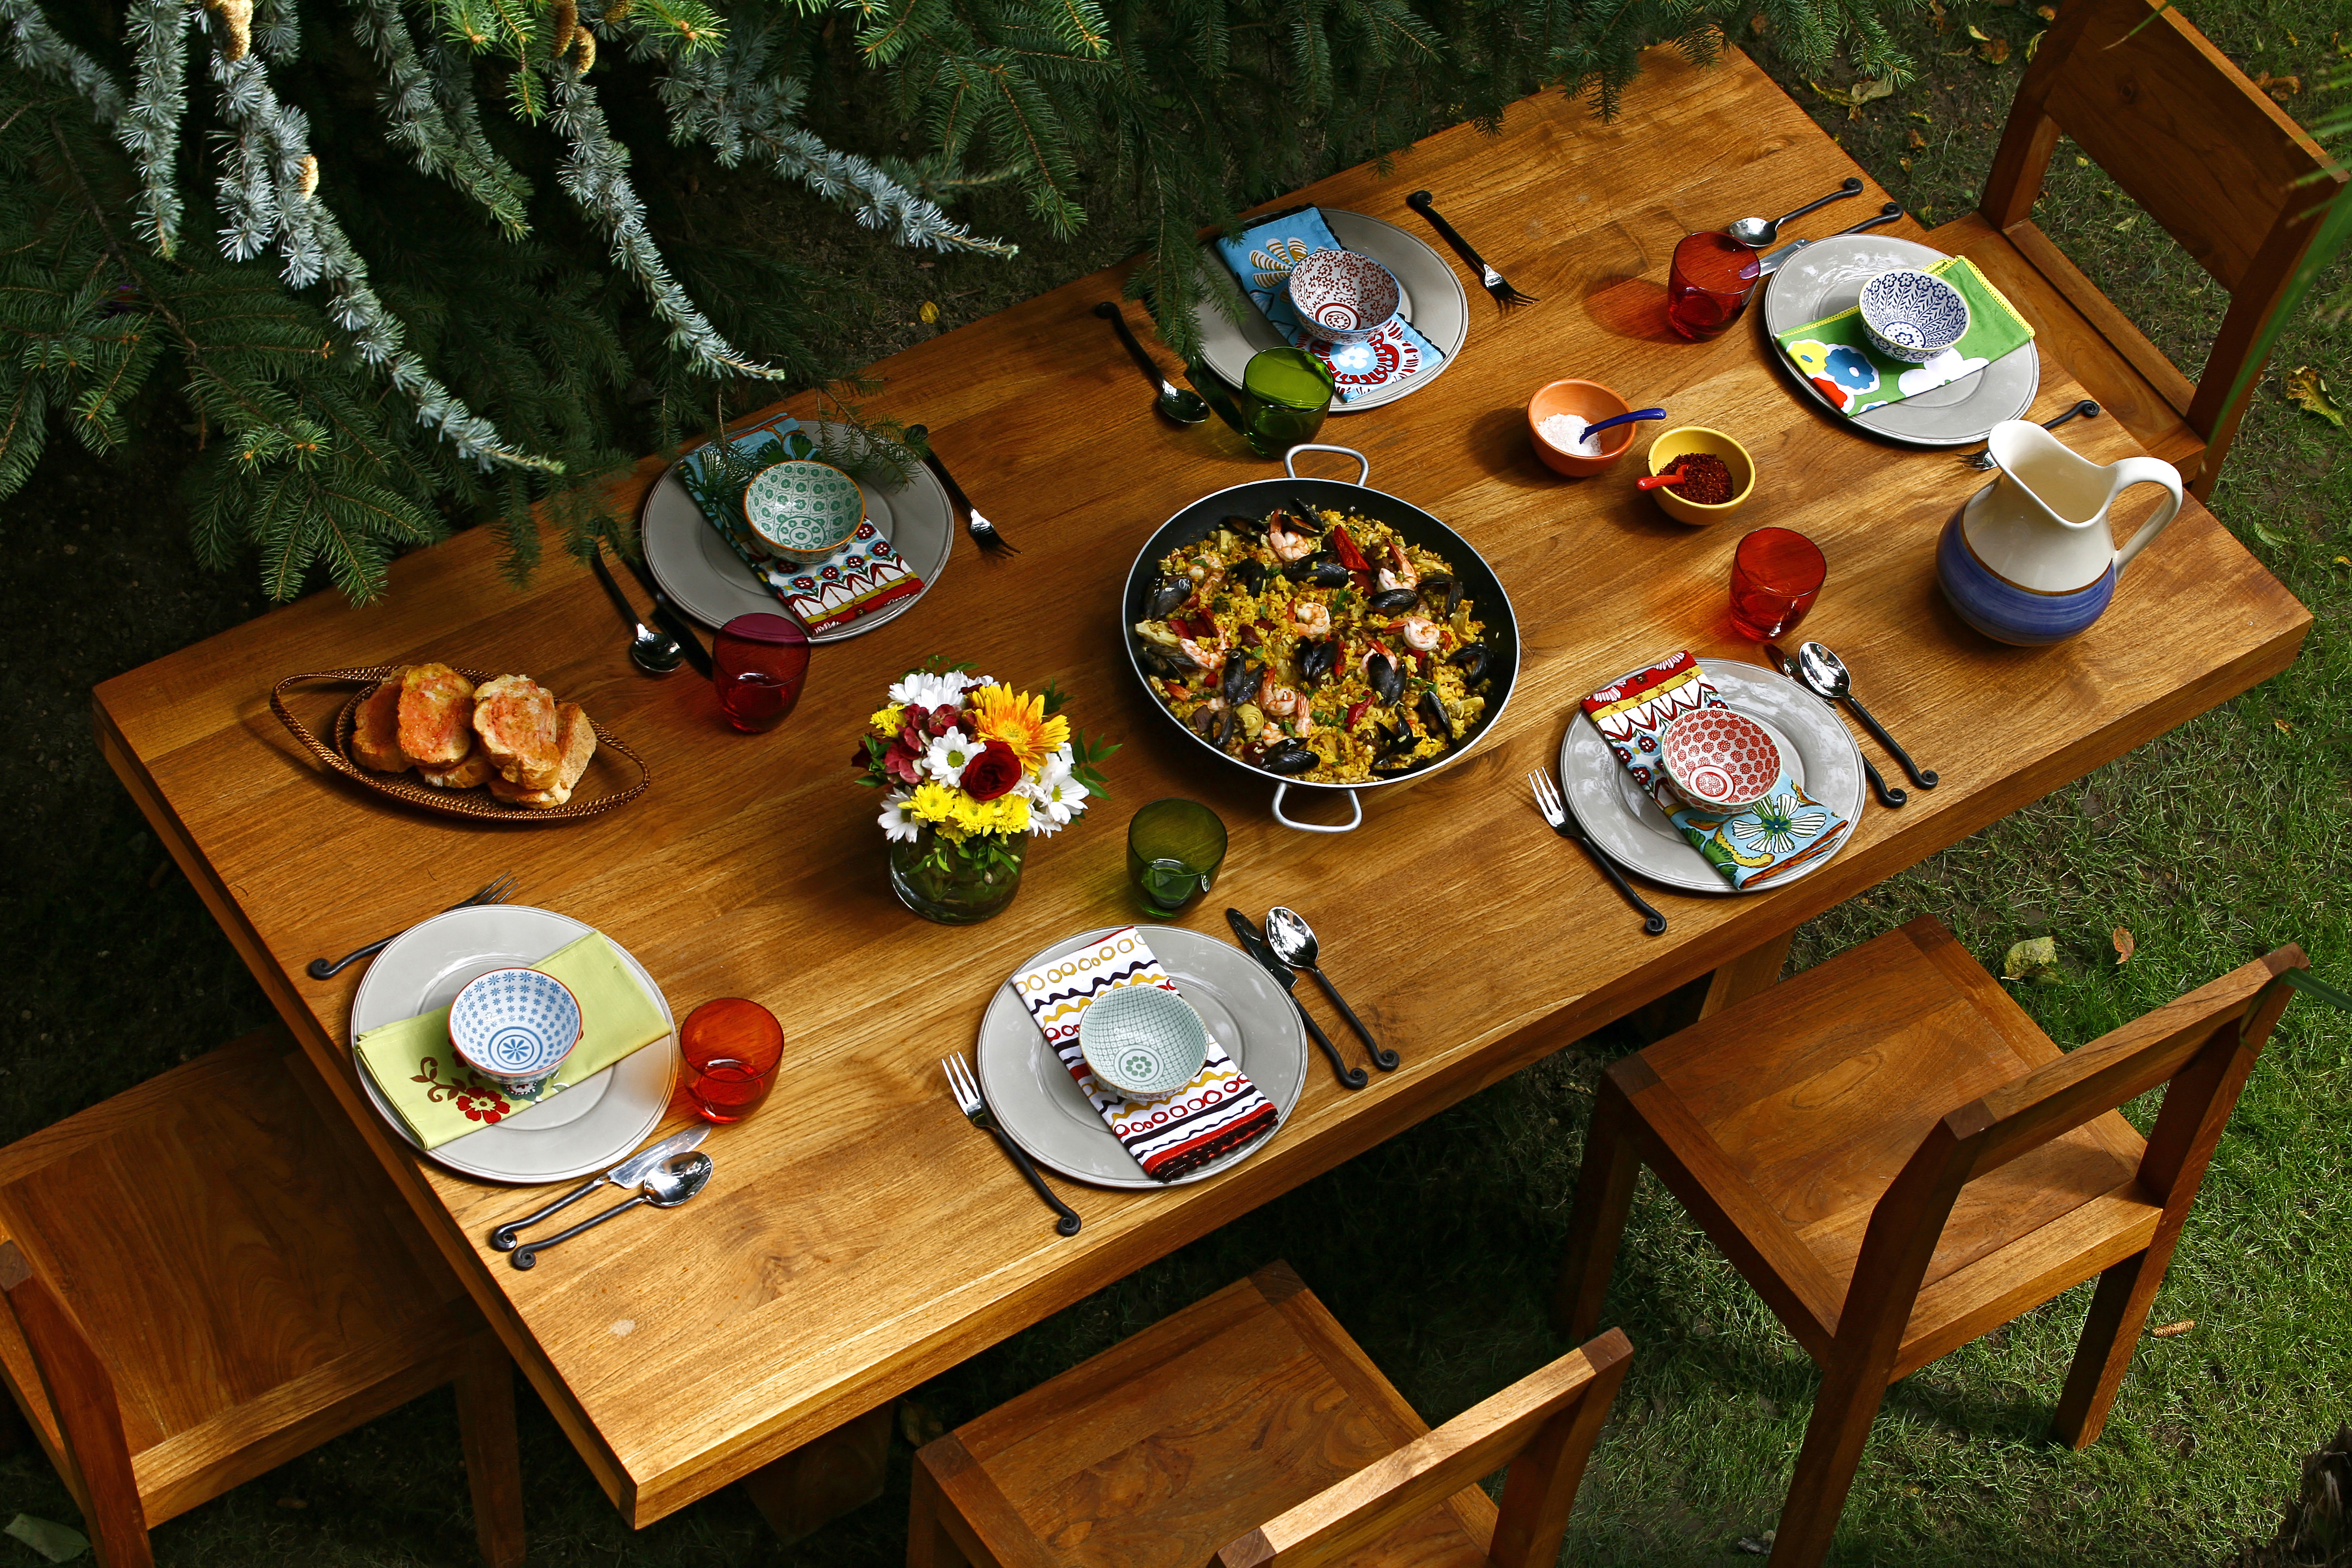 Spanish style dining table with paella and  Spanish style dishes on wooden table in backyard. Overview.